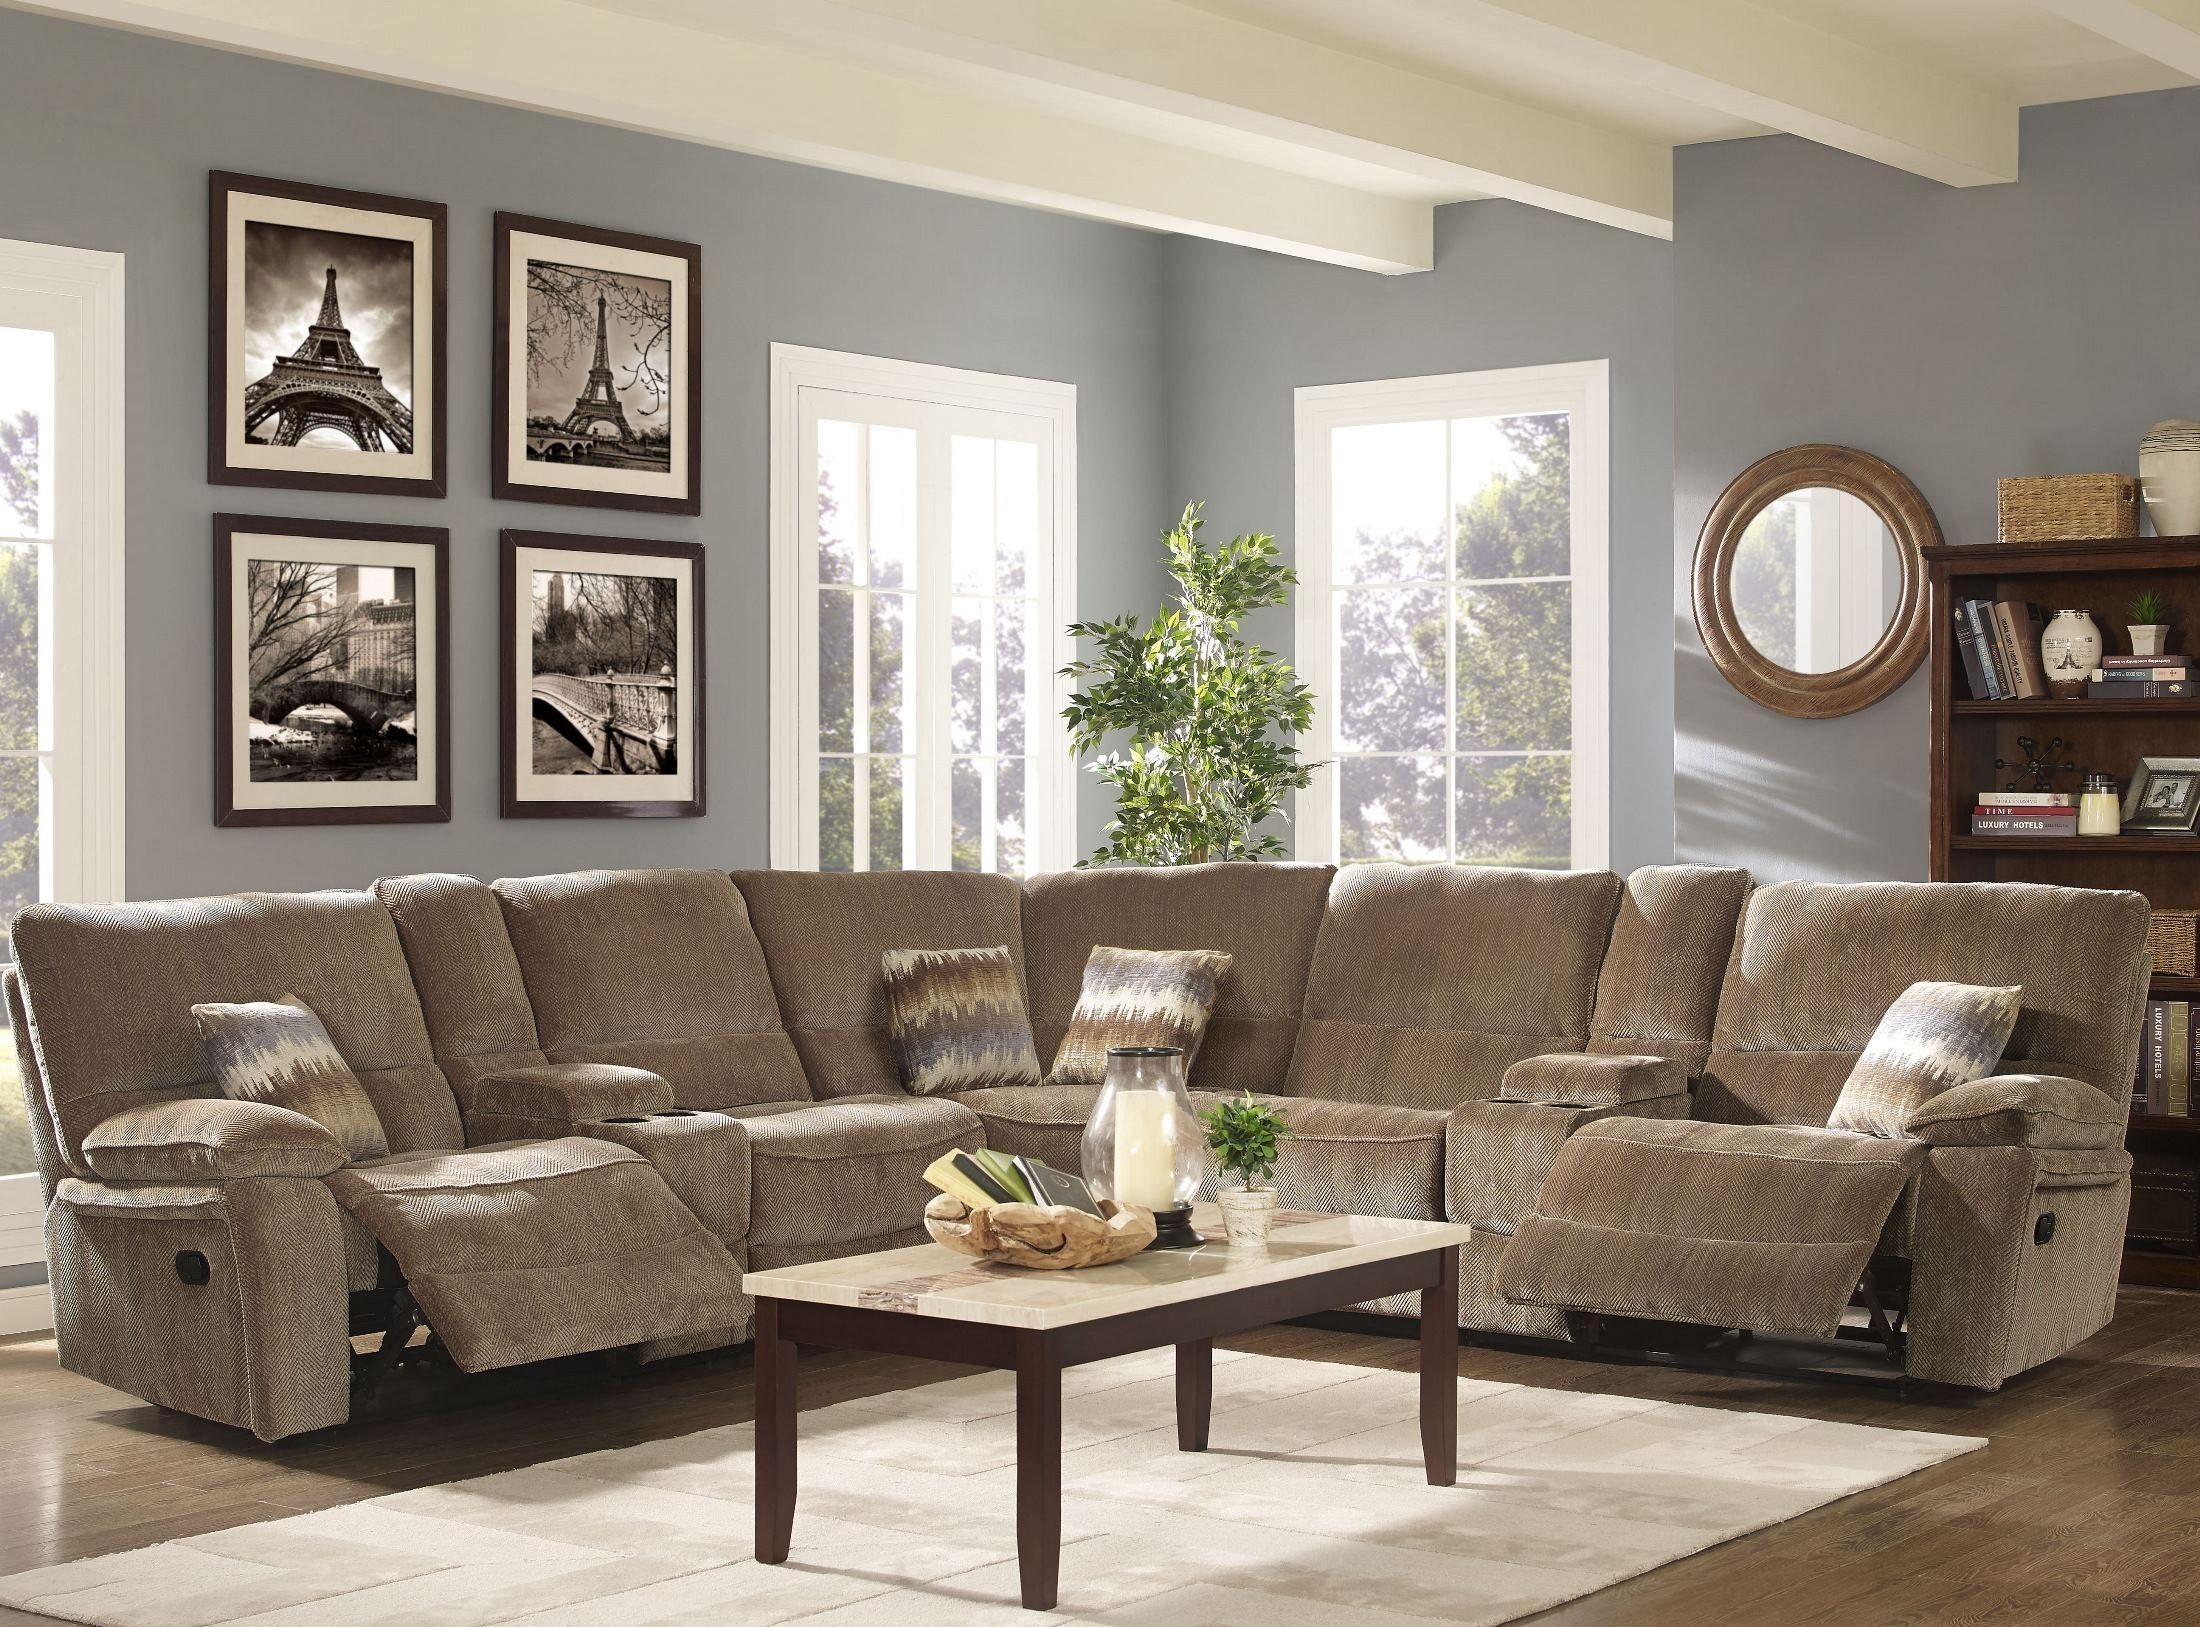 Ranger Bravo Sandalwood Power Reclining Sectional From New Classic Regarding Turdur 3 Piece Sectionals With Raf Loveseat (View 18 of 25)